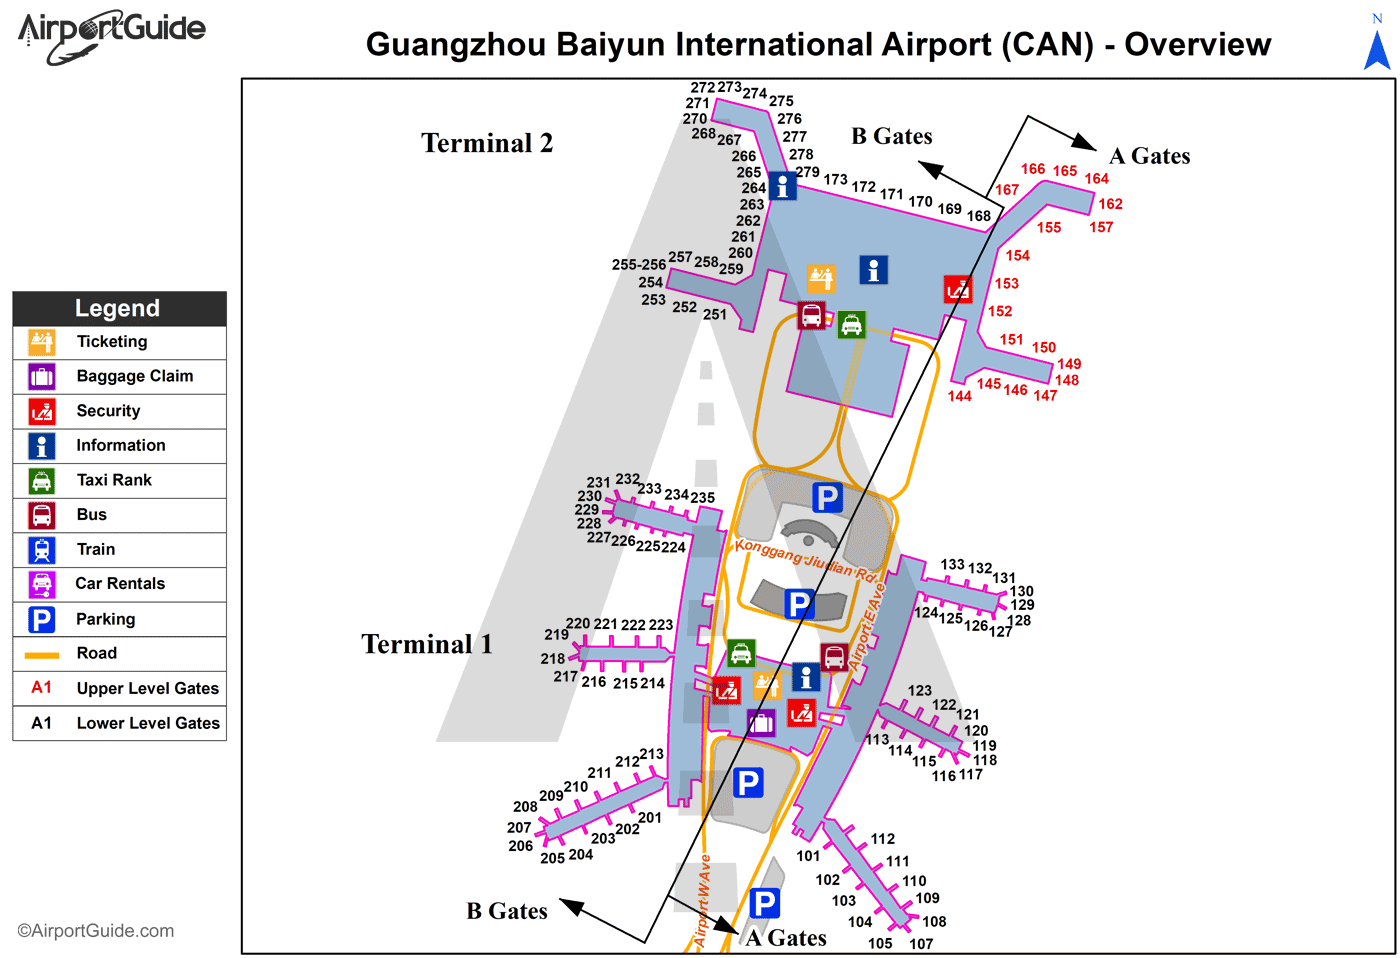 Guangzhou (Canton) - Guangzhou Baiyun International (CAN) Airport Terminal Map - Overview